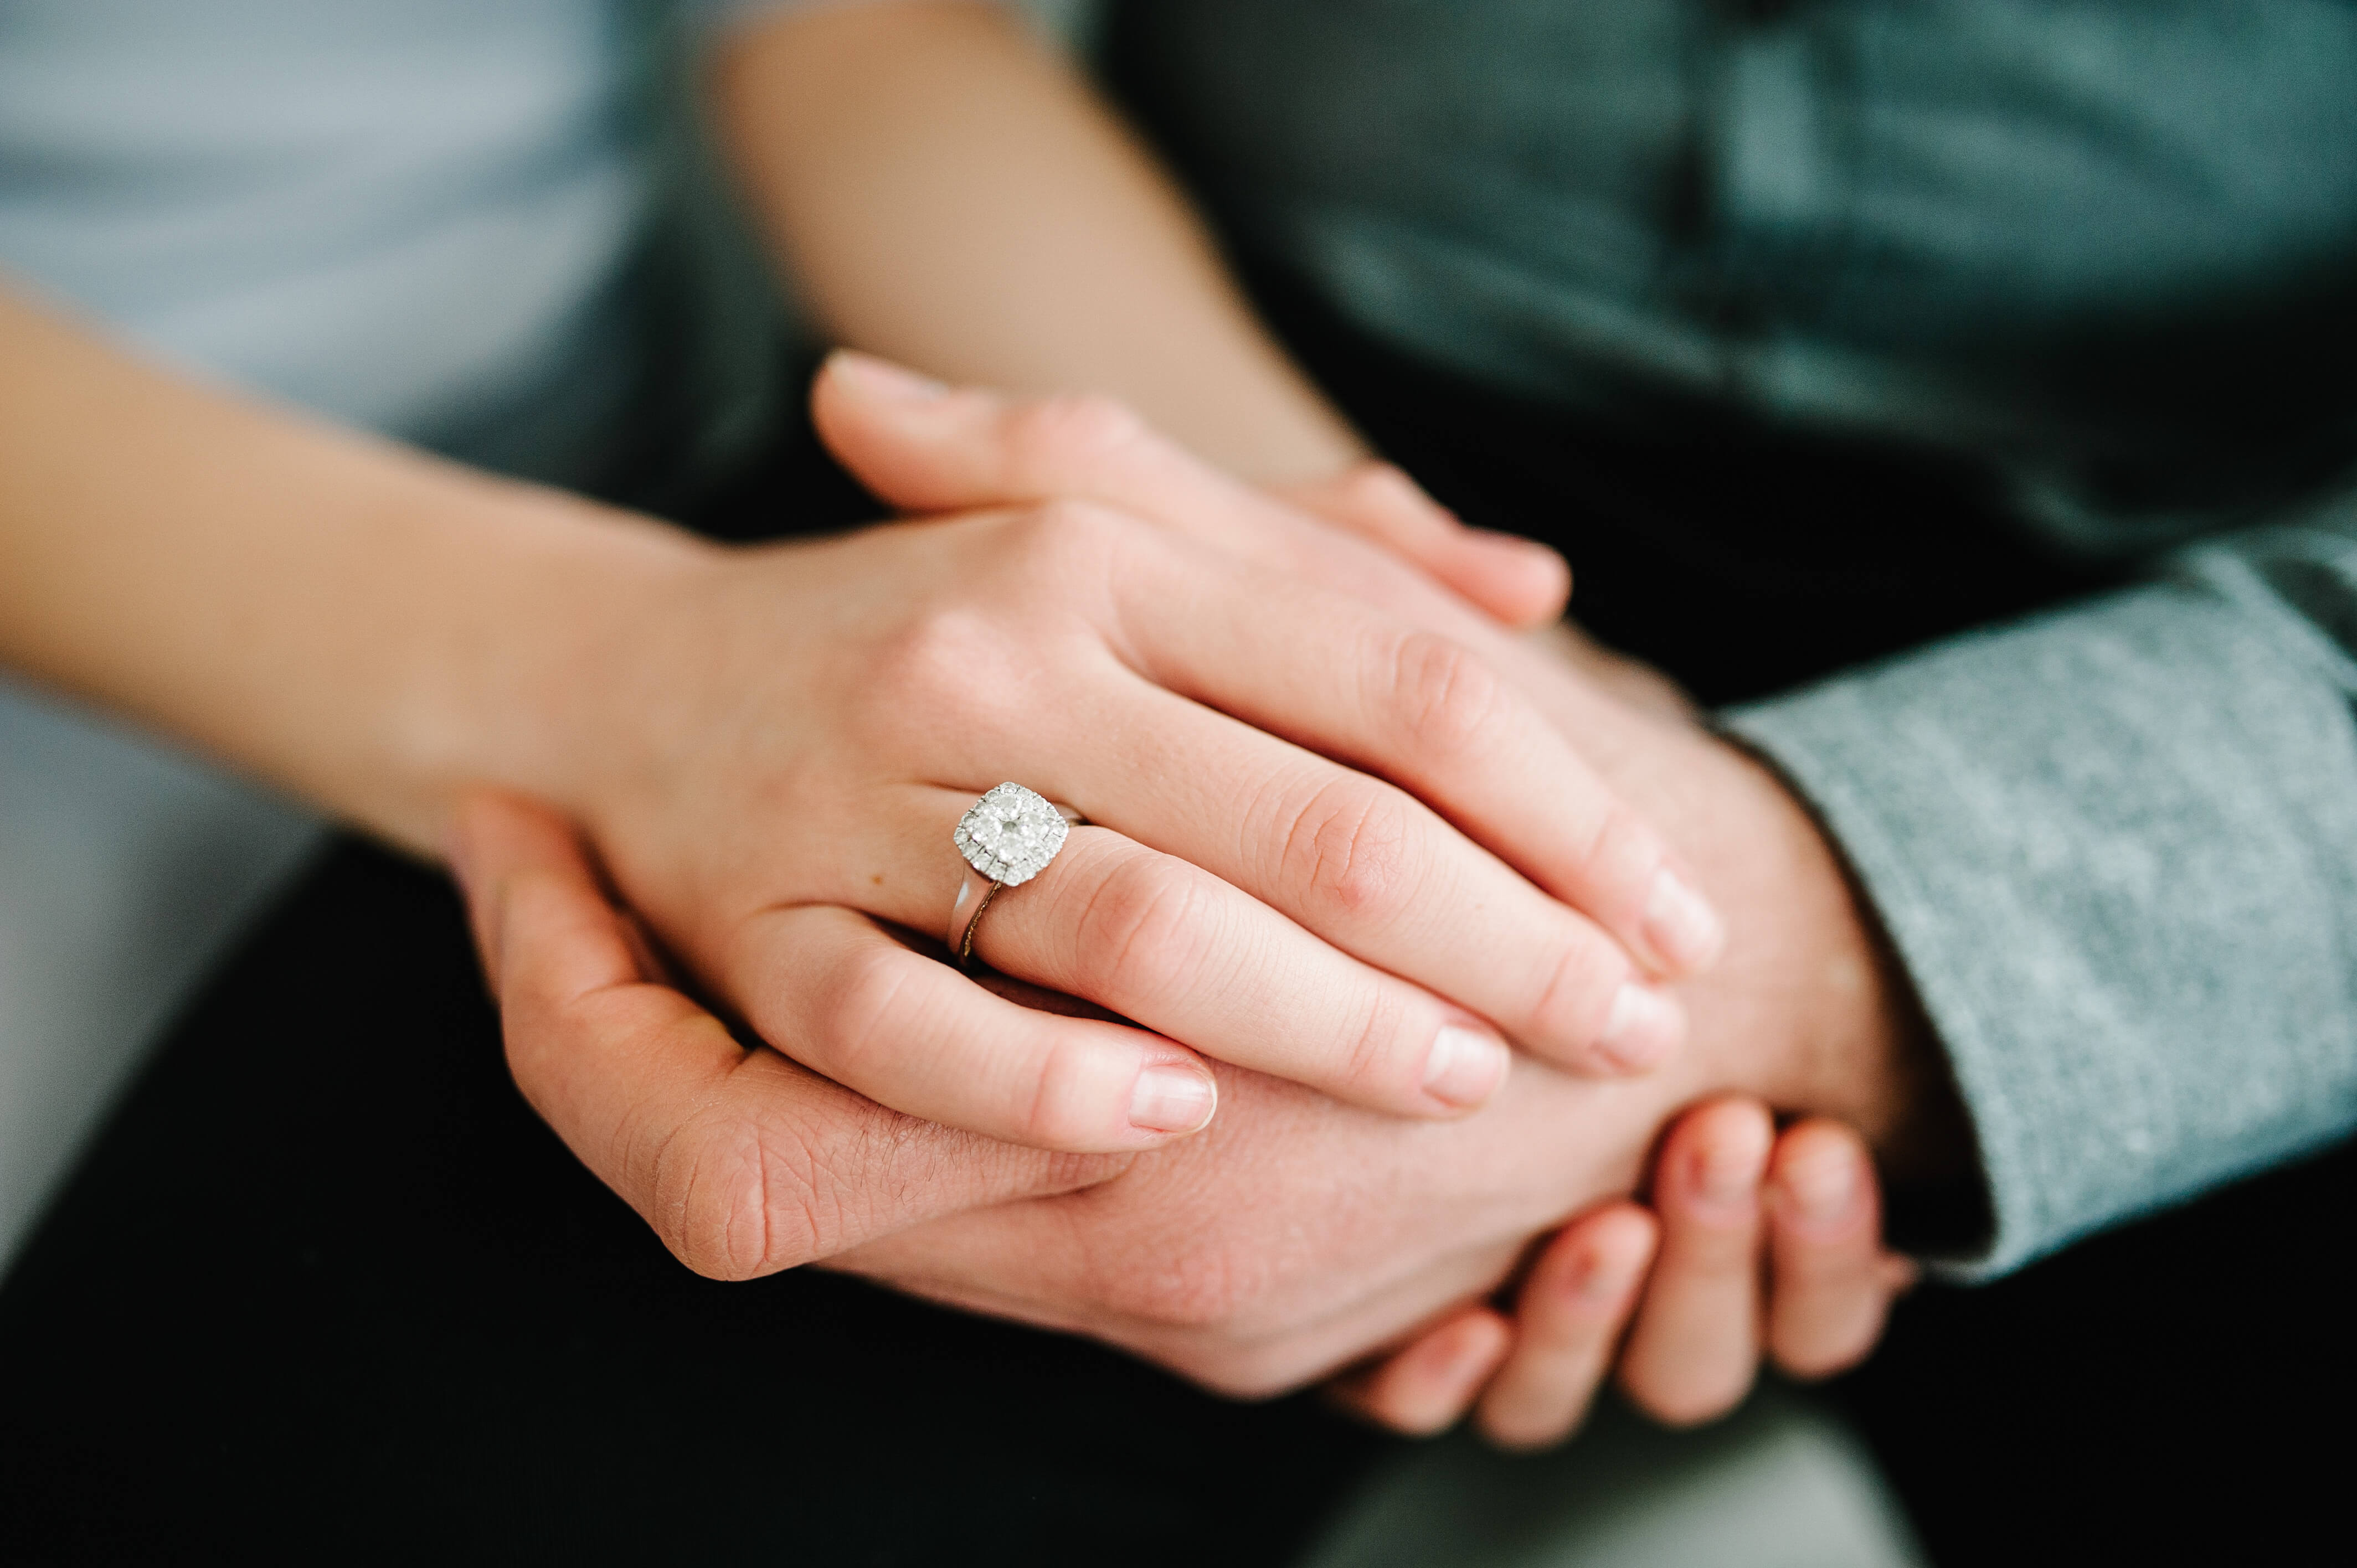 Couple holding hands wearing wedding ring